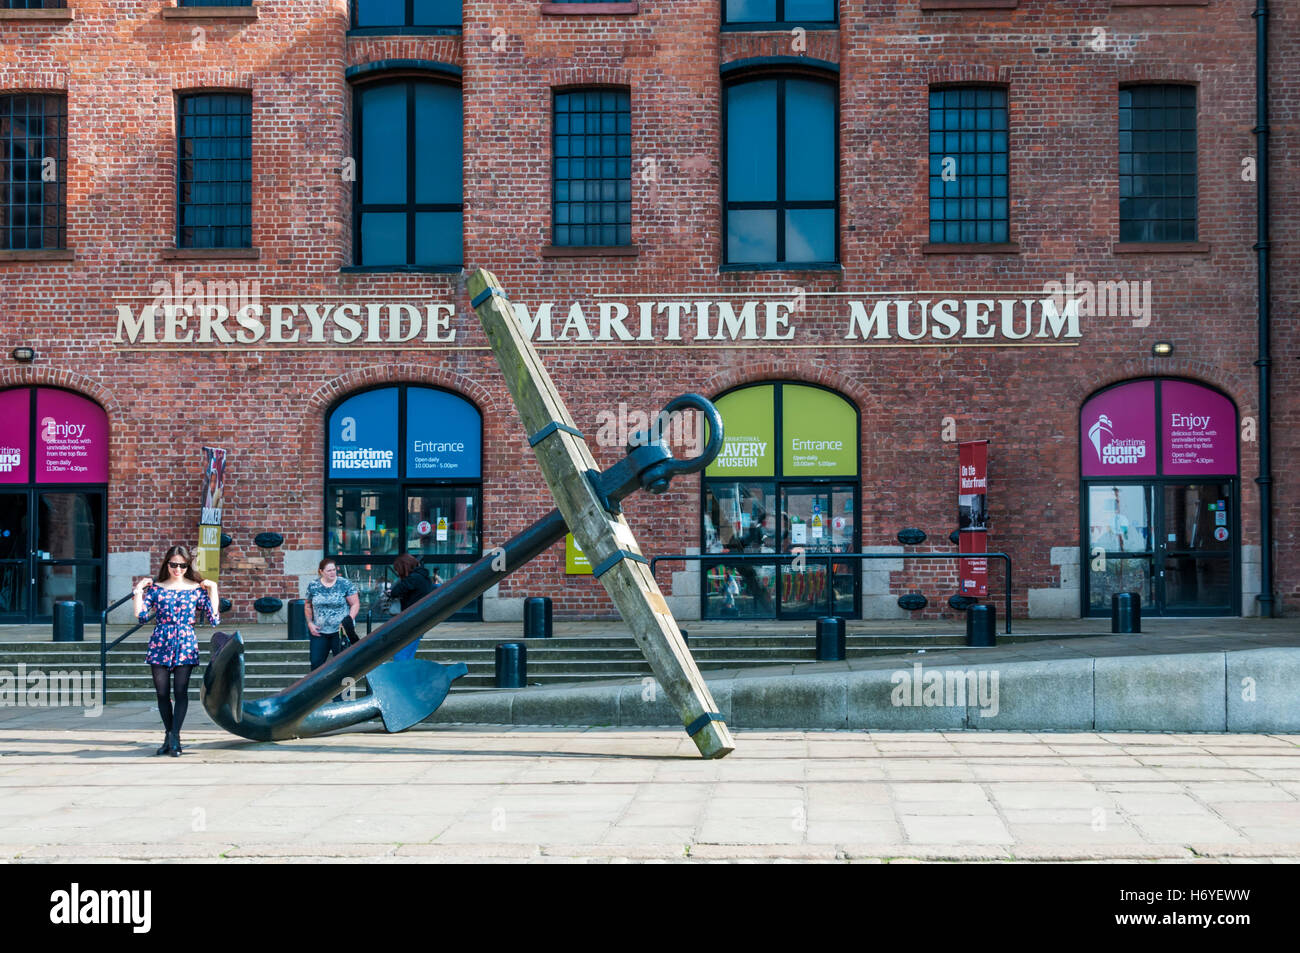 Merseyside Maritime Museum in the Albert Dock, Liverpool. - Stock Image